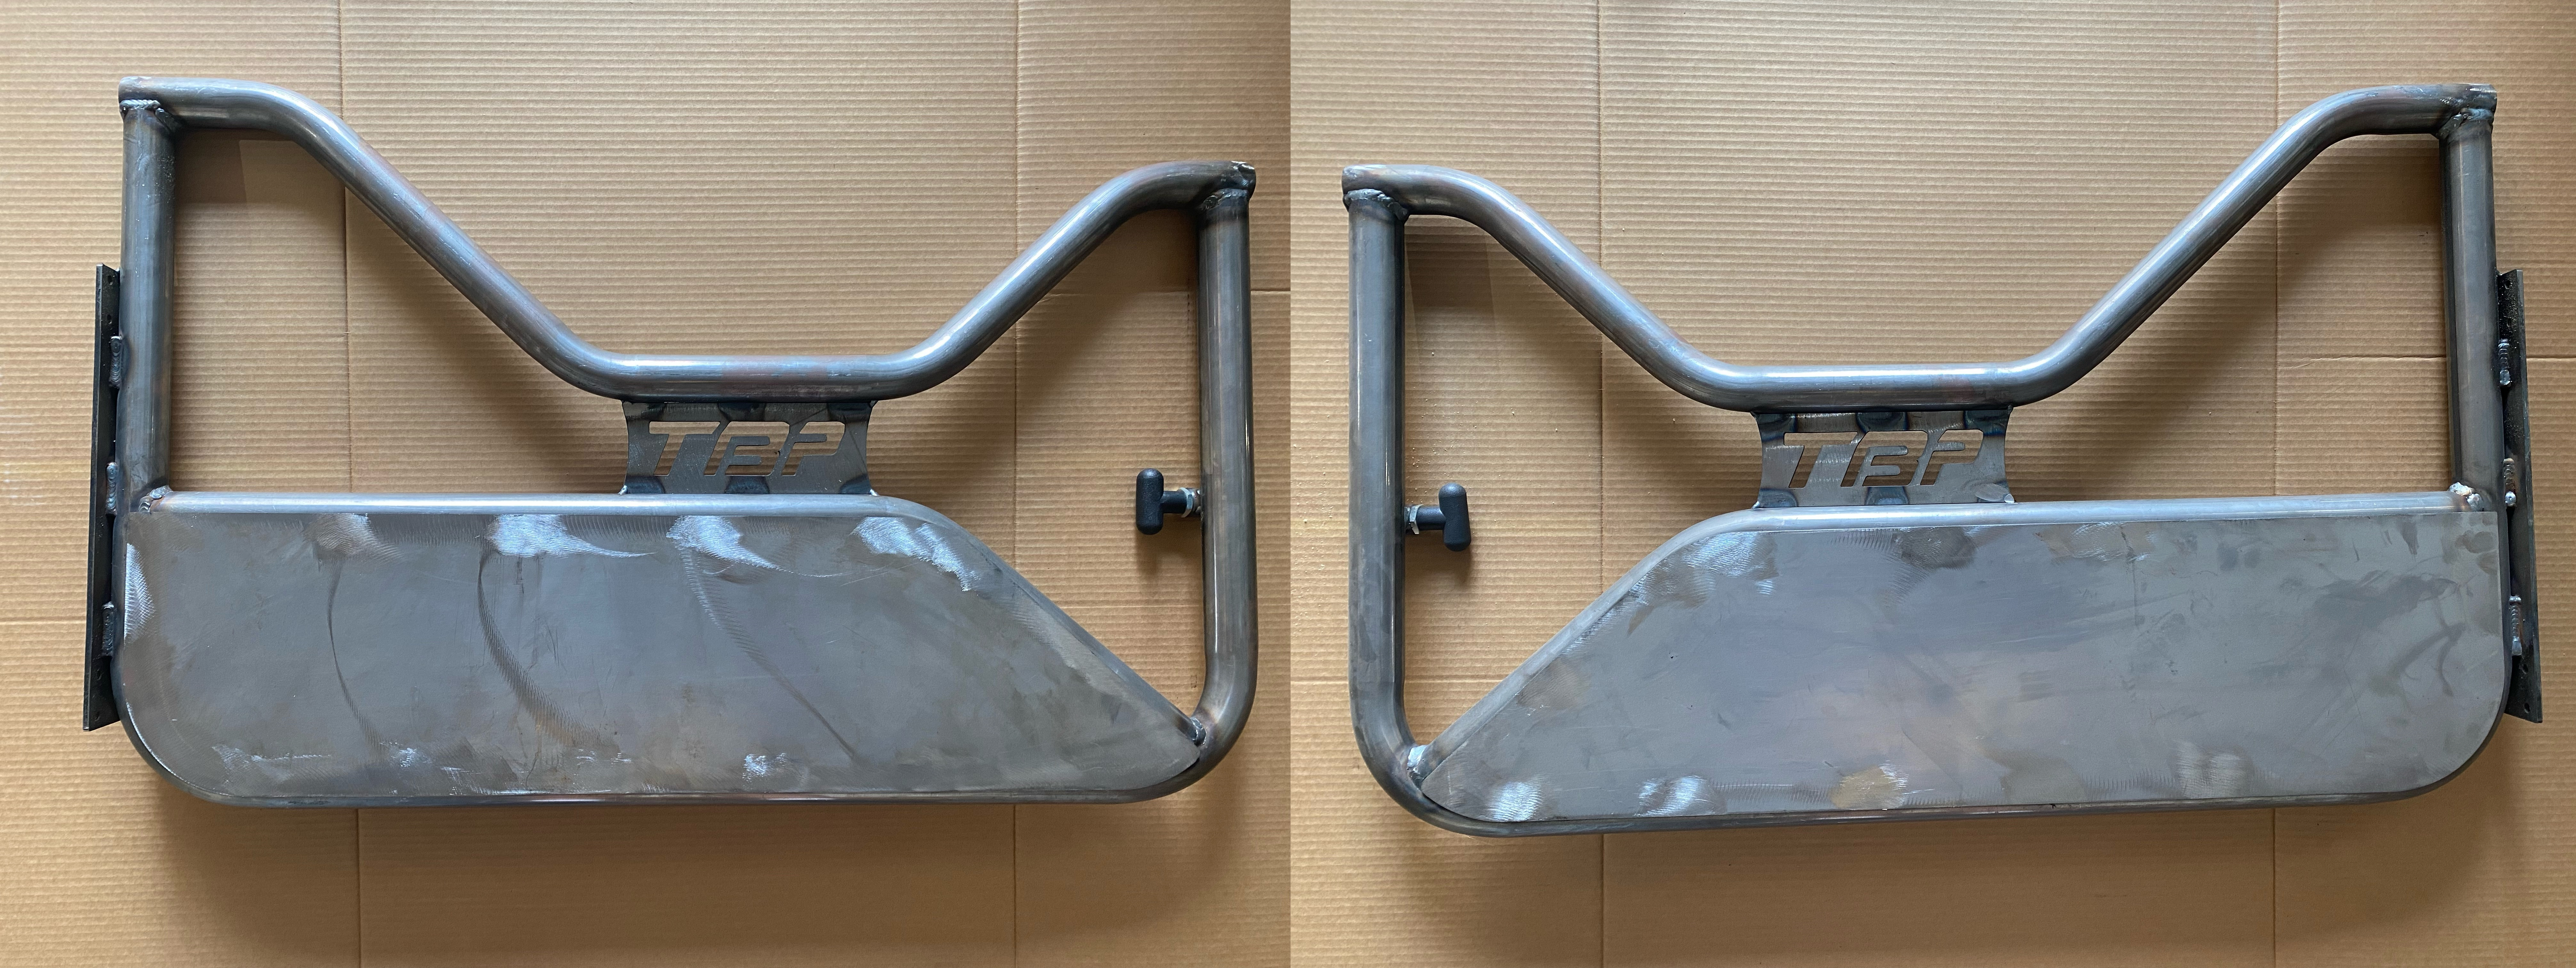 Image for product trail-doors-w-speaker-mounts-stainless-steel-quick-release-hinge-kit